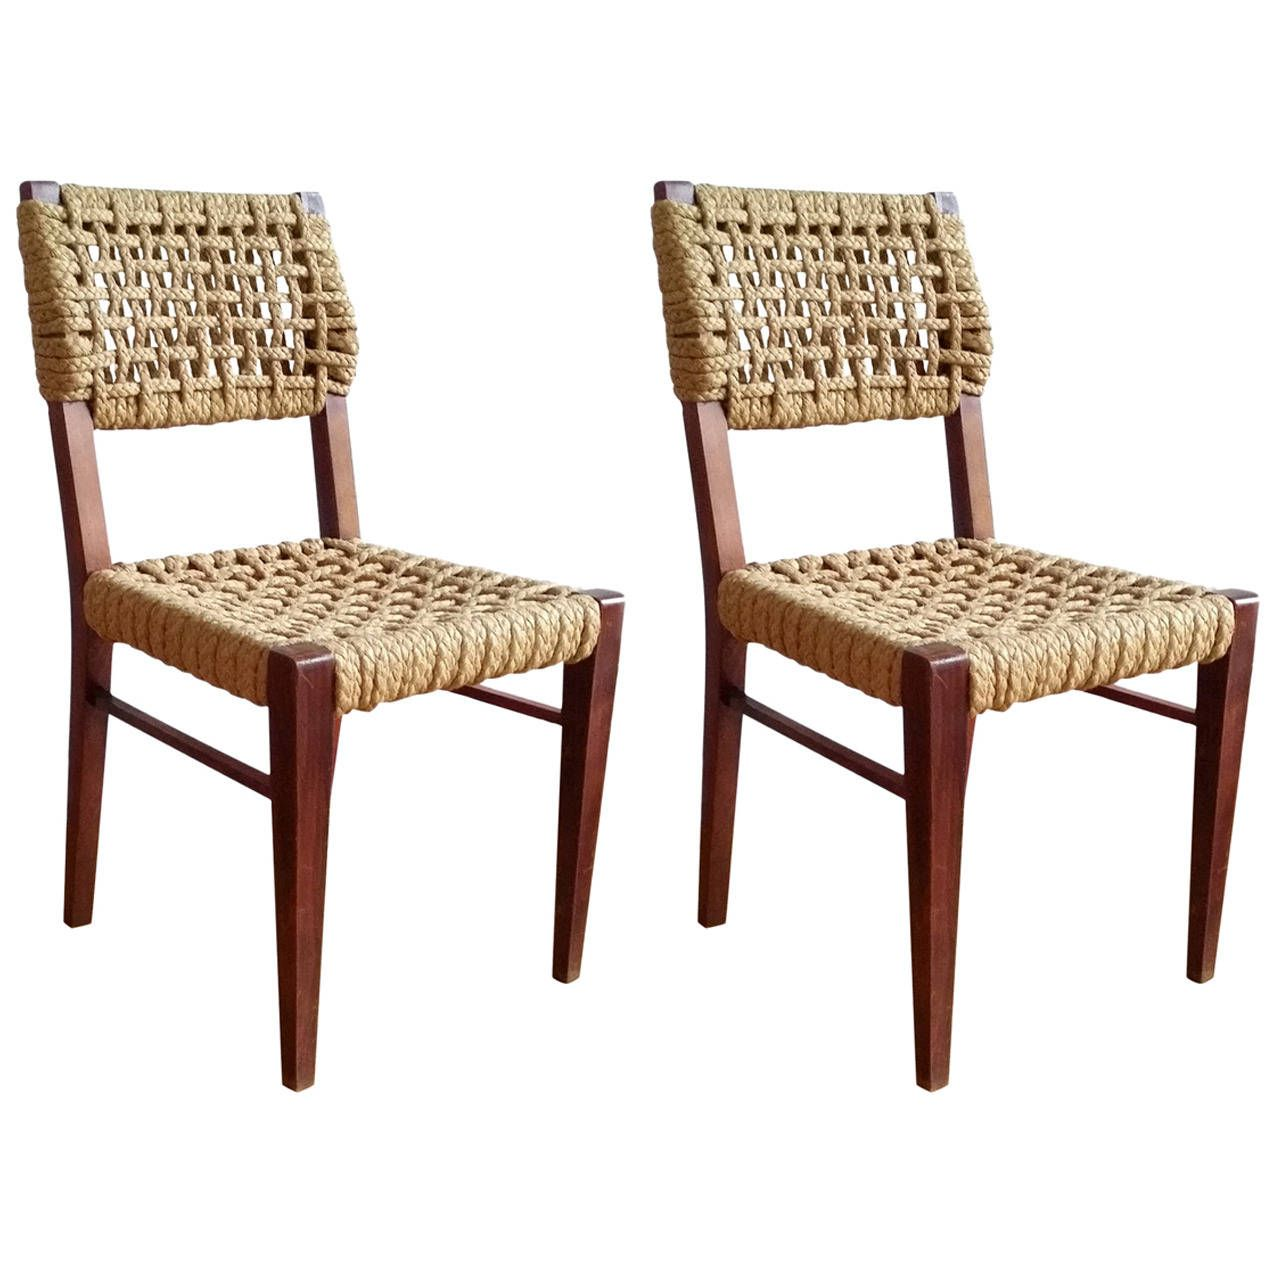 Kitchen Dining Chairs Furniture Leather Dining Room Chairs Woven Dining Chairs Leather Dining Chairs